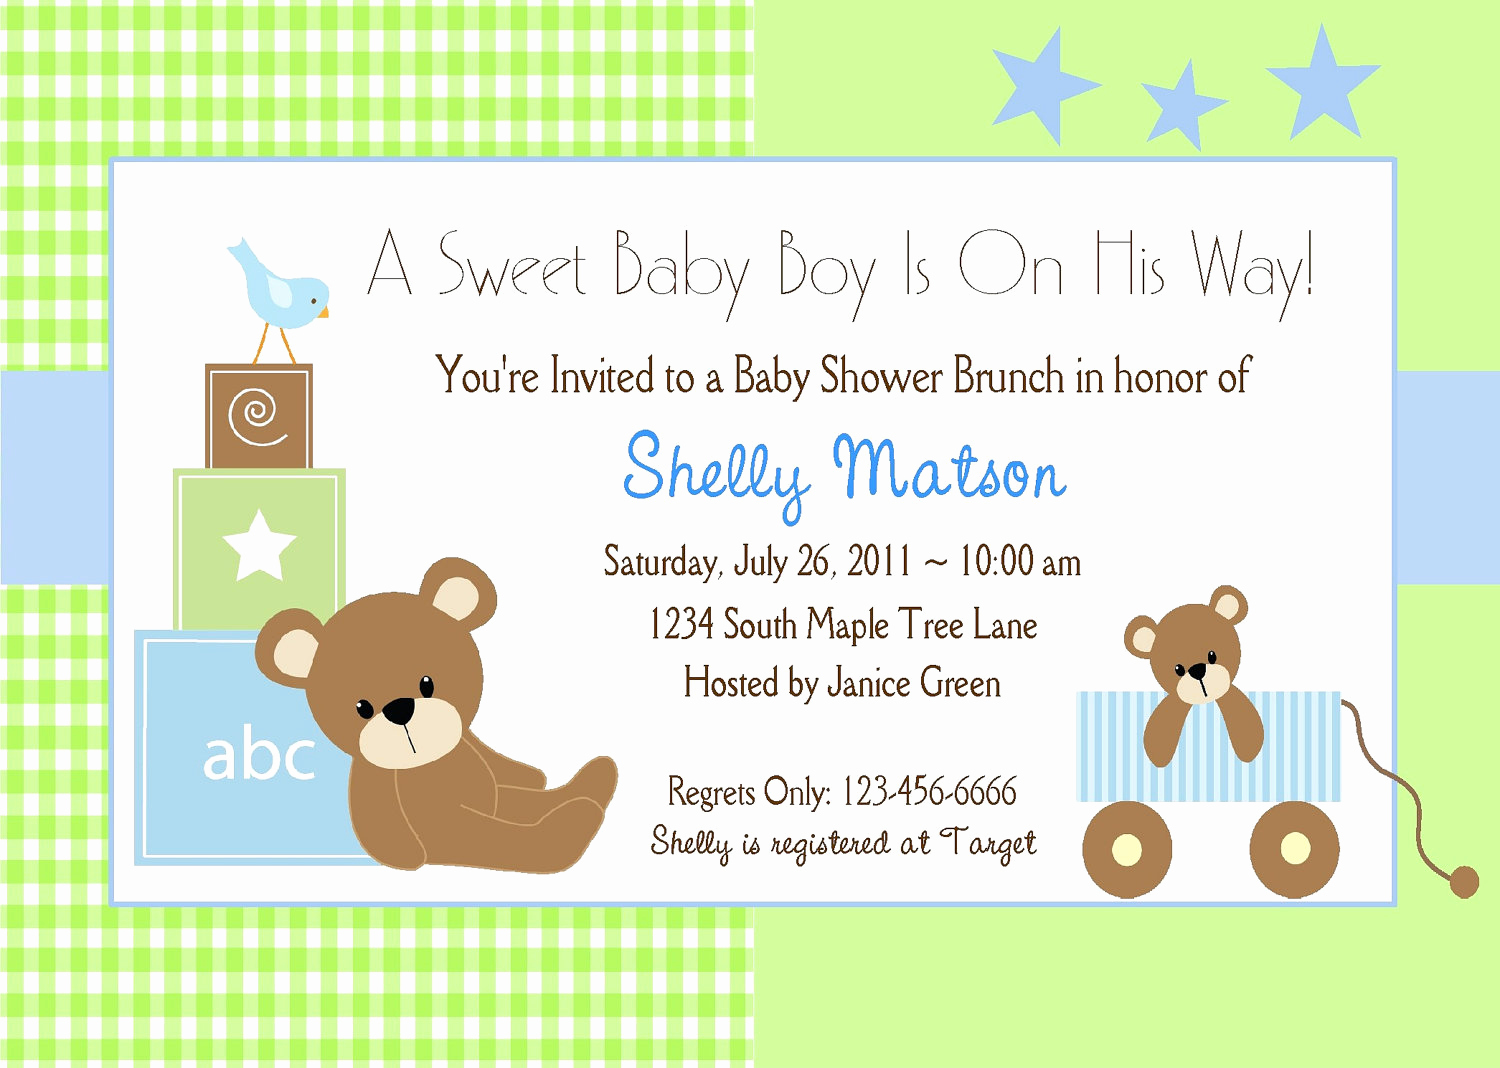 Baby Shower Invitation Templates Luxury Free Baby Boy Shower Invitations Templates Baby Boy